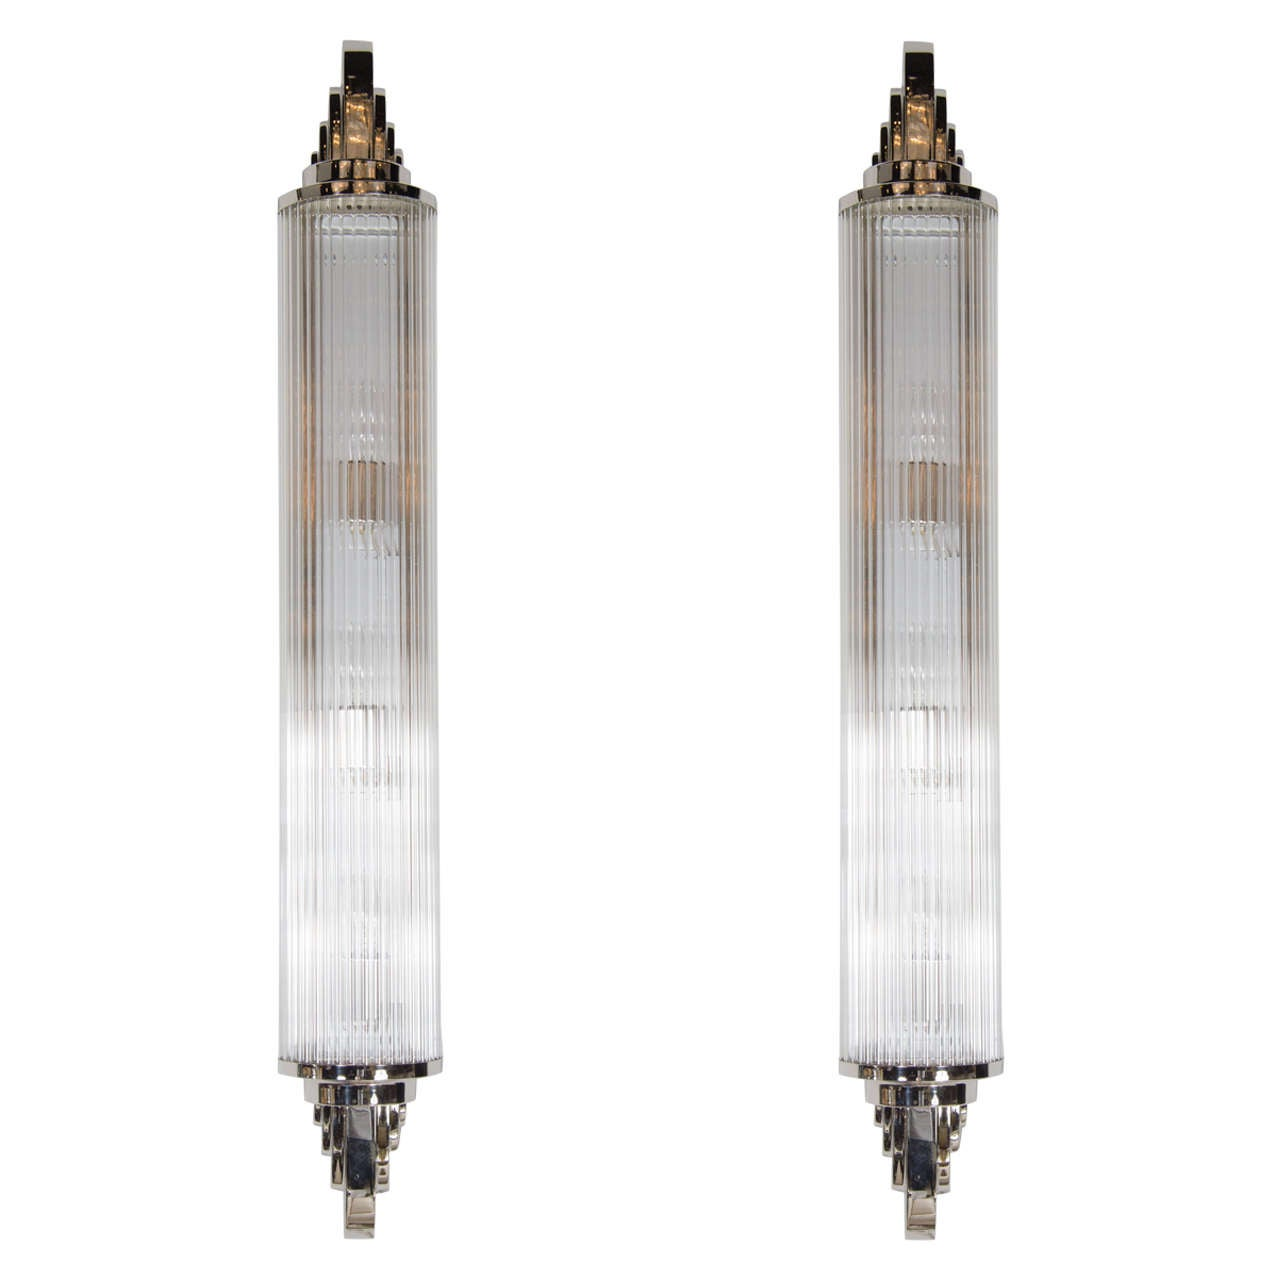 pair of french art deco skyscraper style sconces in nickeled bronze and glass for sale at 1stdibs. Black Bedroom Furniture Sets. Home Design Ideas